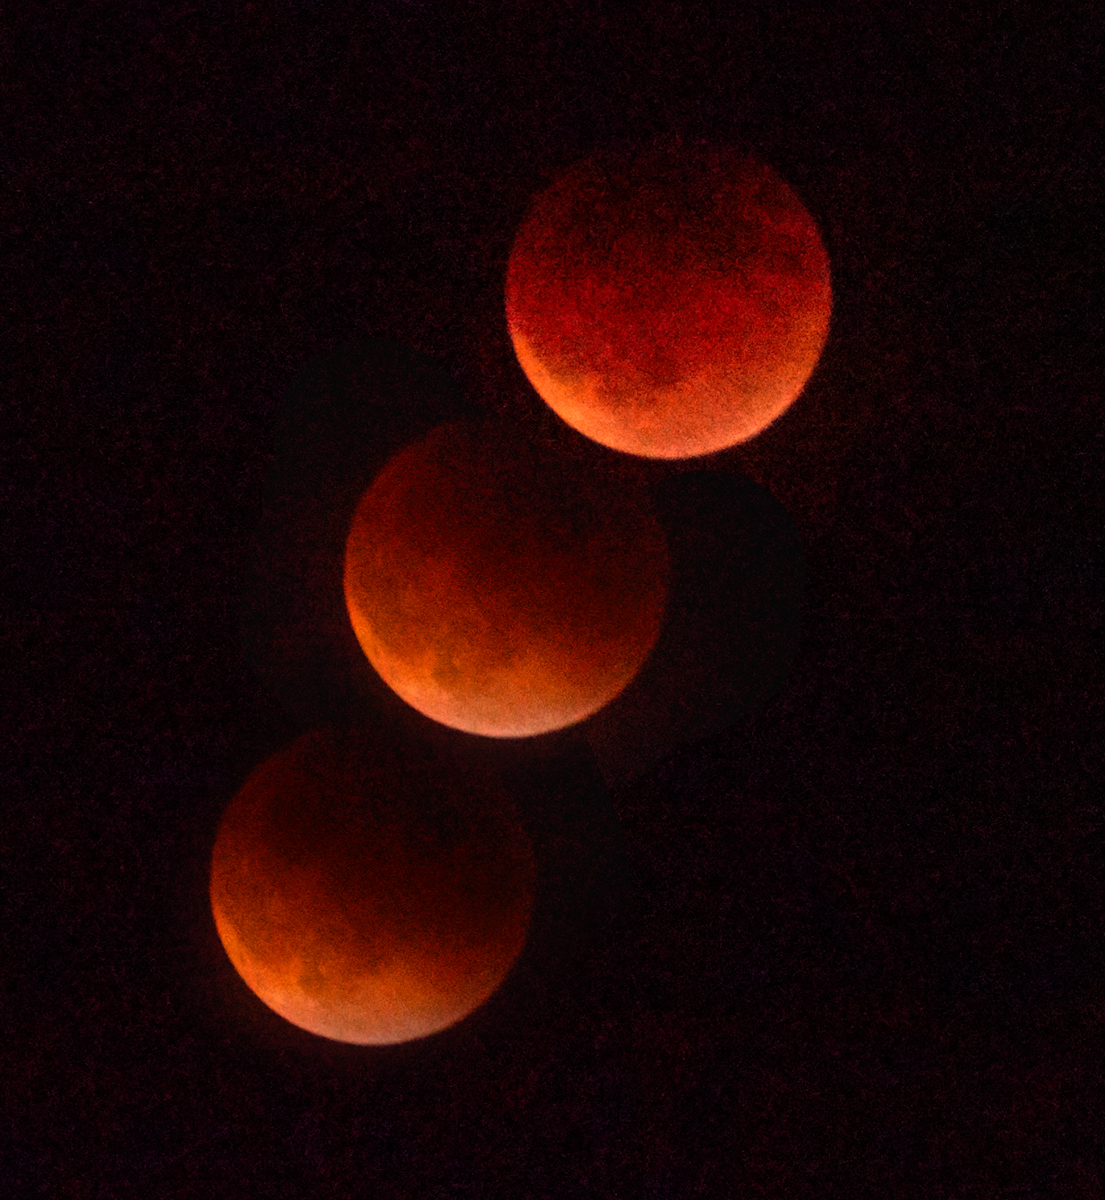 A portion of the Blood Moon Eclipse